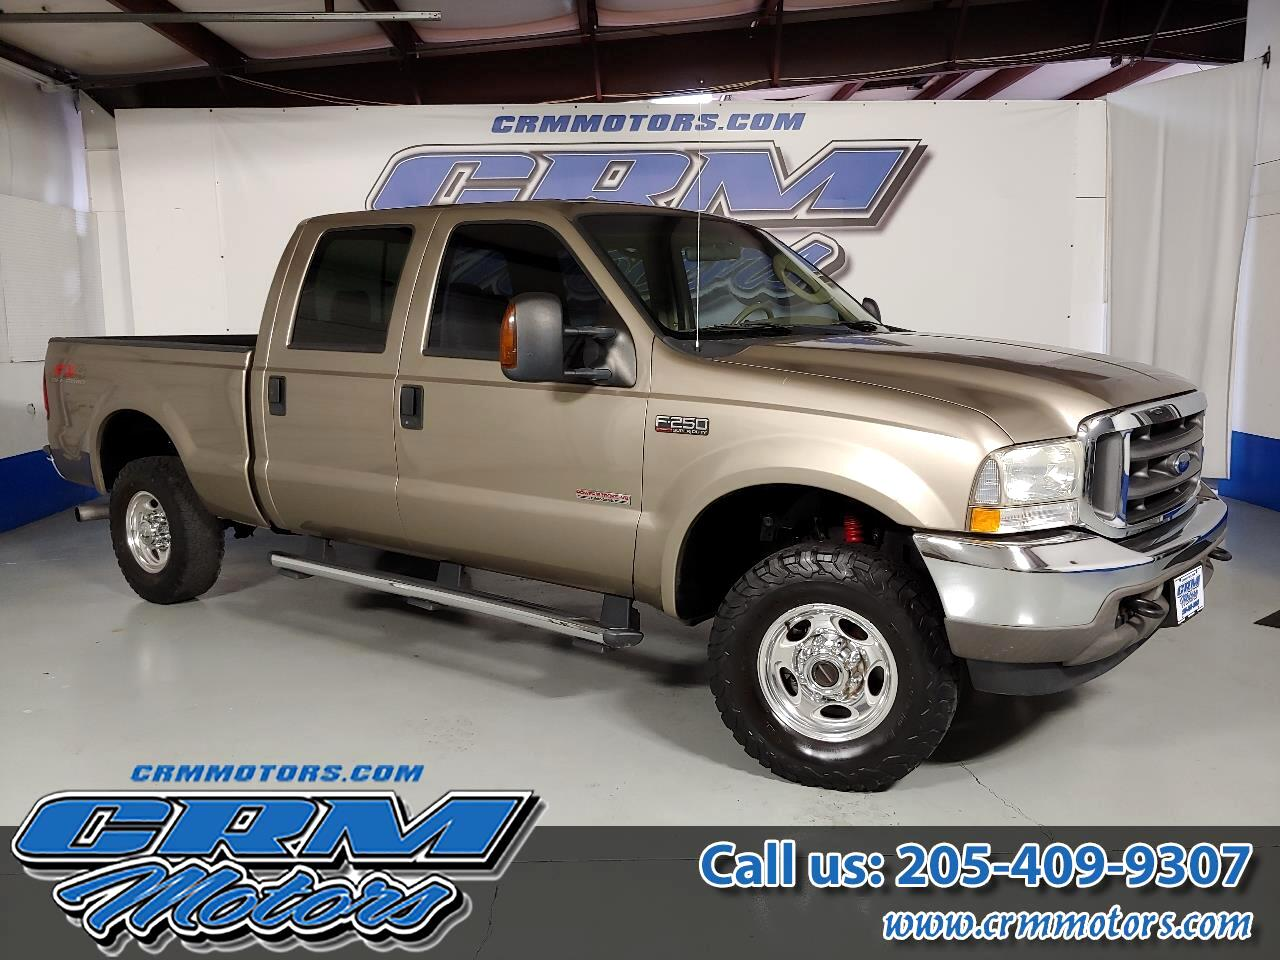 2004 Ford Super Duty F-250 4WD CREW CAB DIESEL! GREAT PRICE!